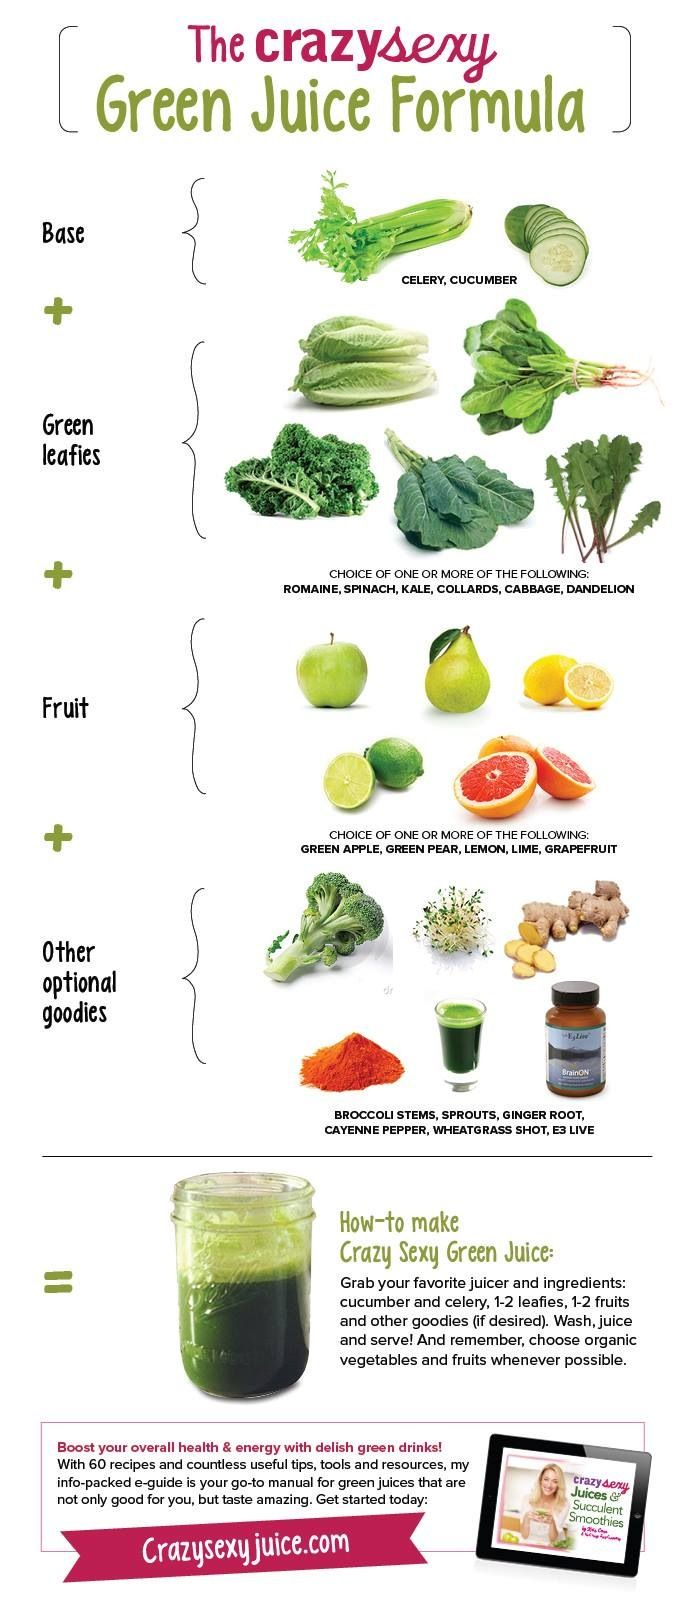 Kris Carr's Green Juice guide